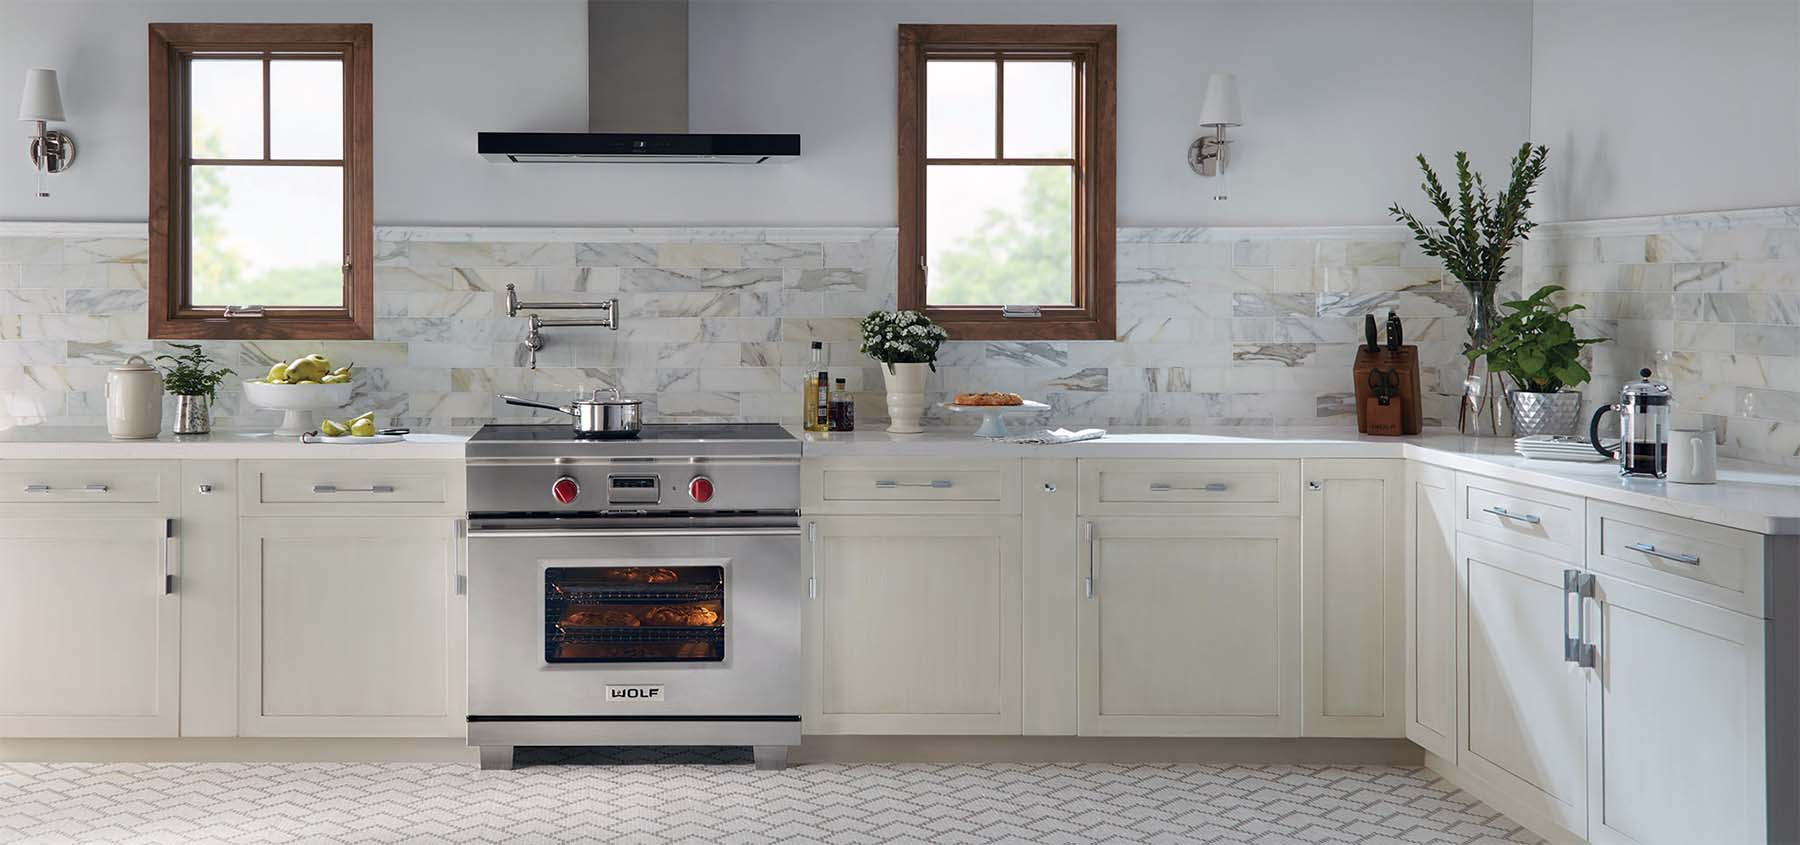 Wolf gas range in a luxury kitchen with marble countertops and back splash